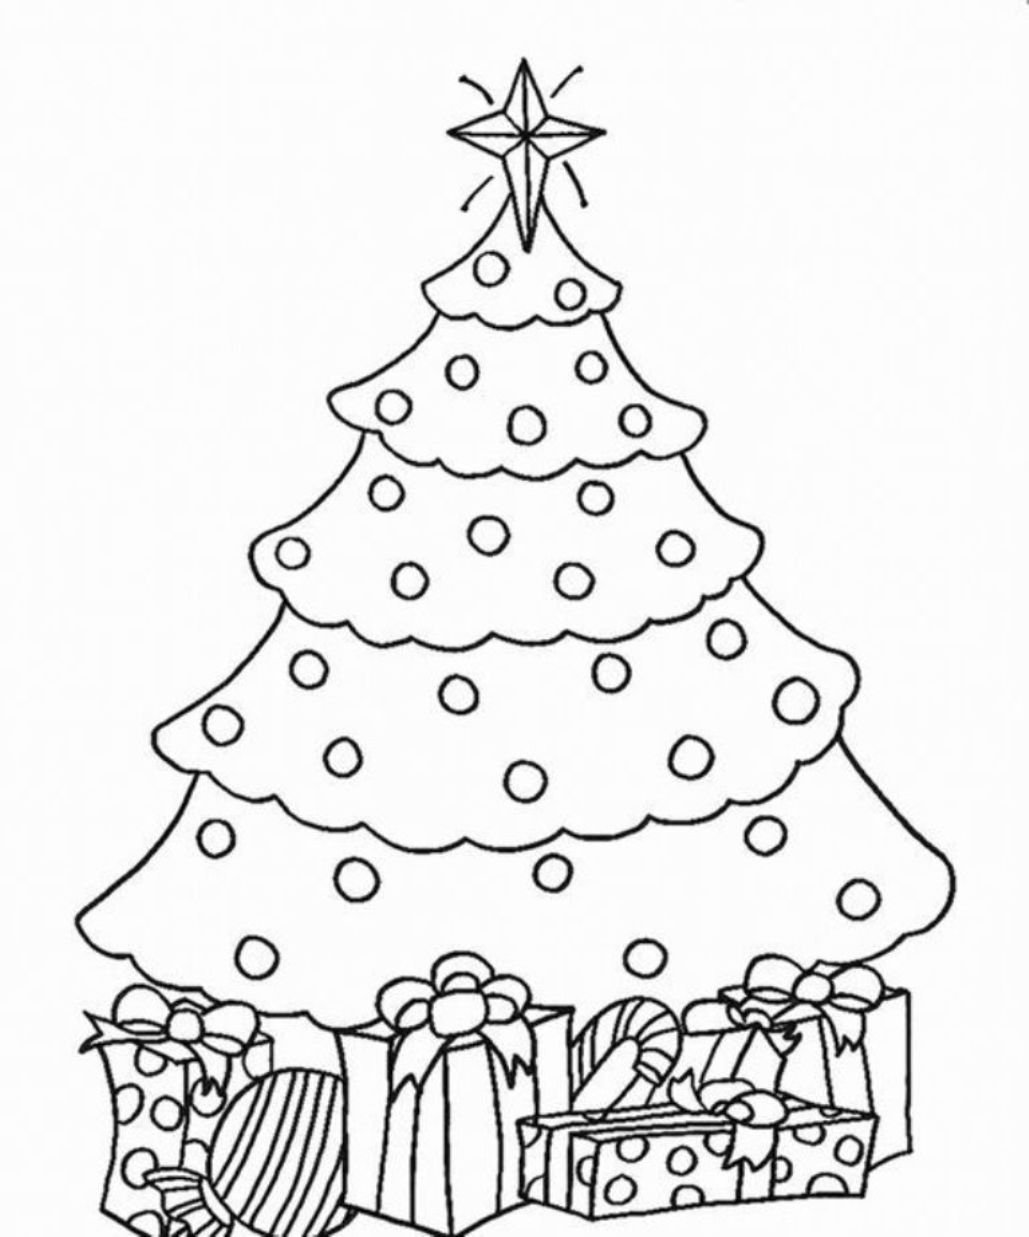 1029x1237 How To Draw A Christmas Tree 2017 Best Template Idea